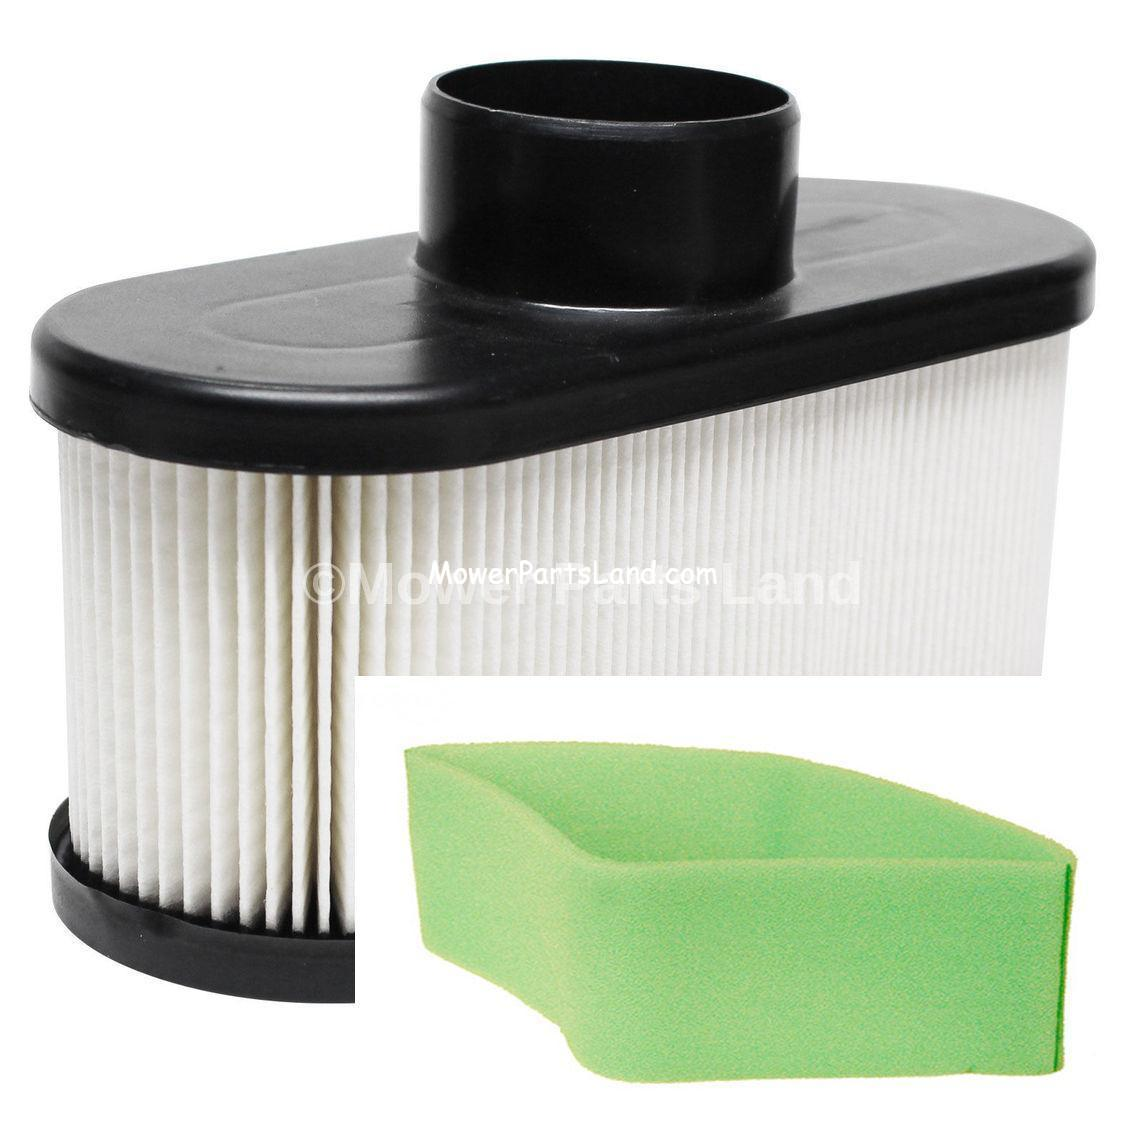 Air Filter for Kawasaki FS541V Engine